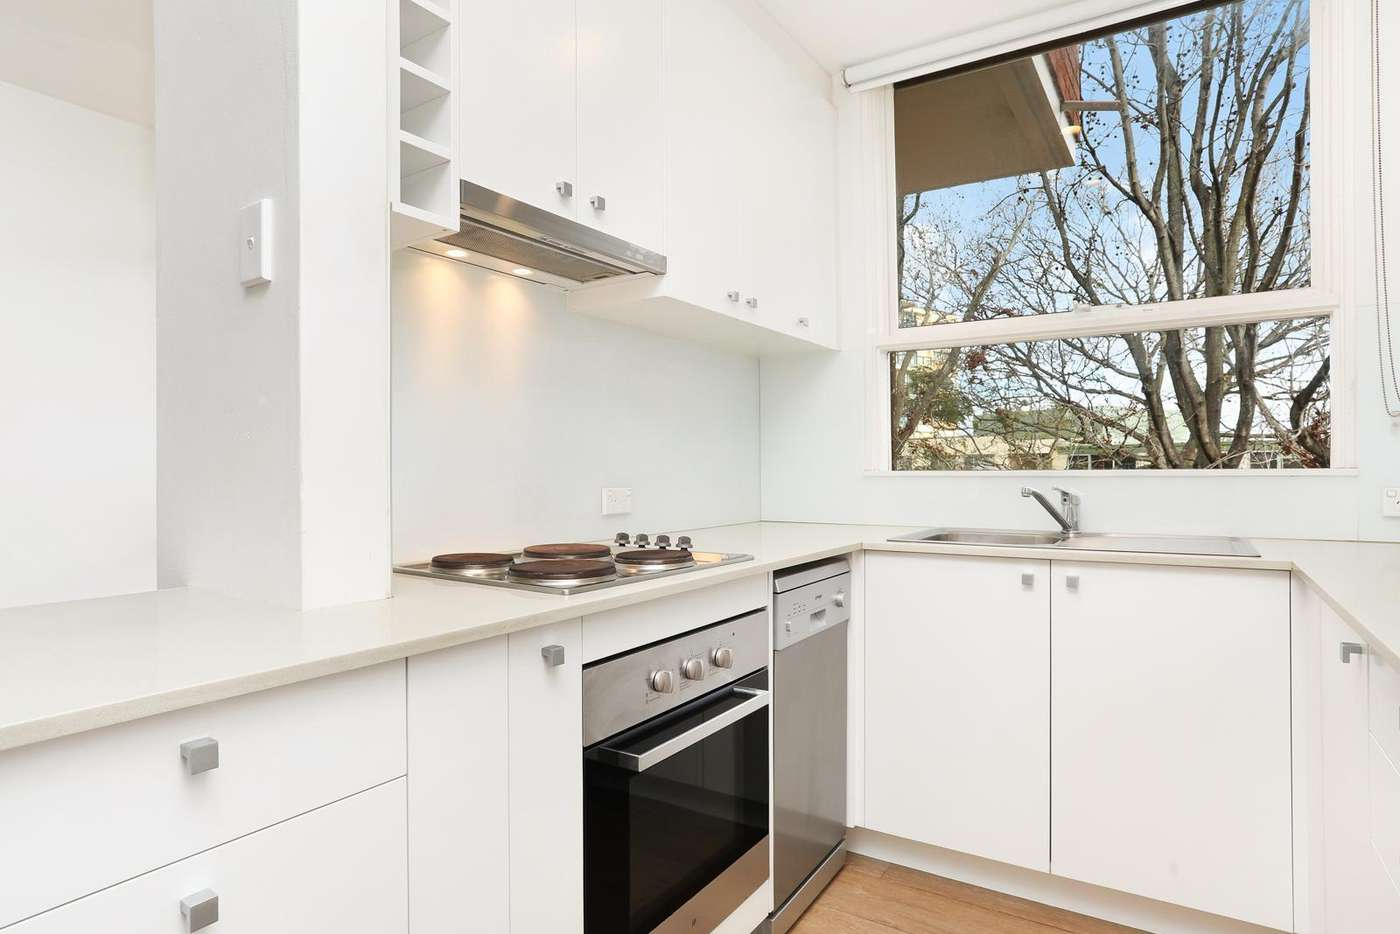 Main view of Homely apartment listing, 16/143 Jersey Road, Woollahra NSW 2025